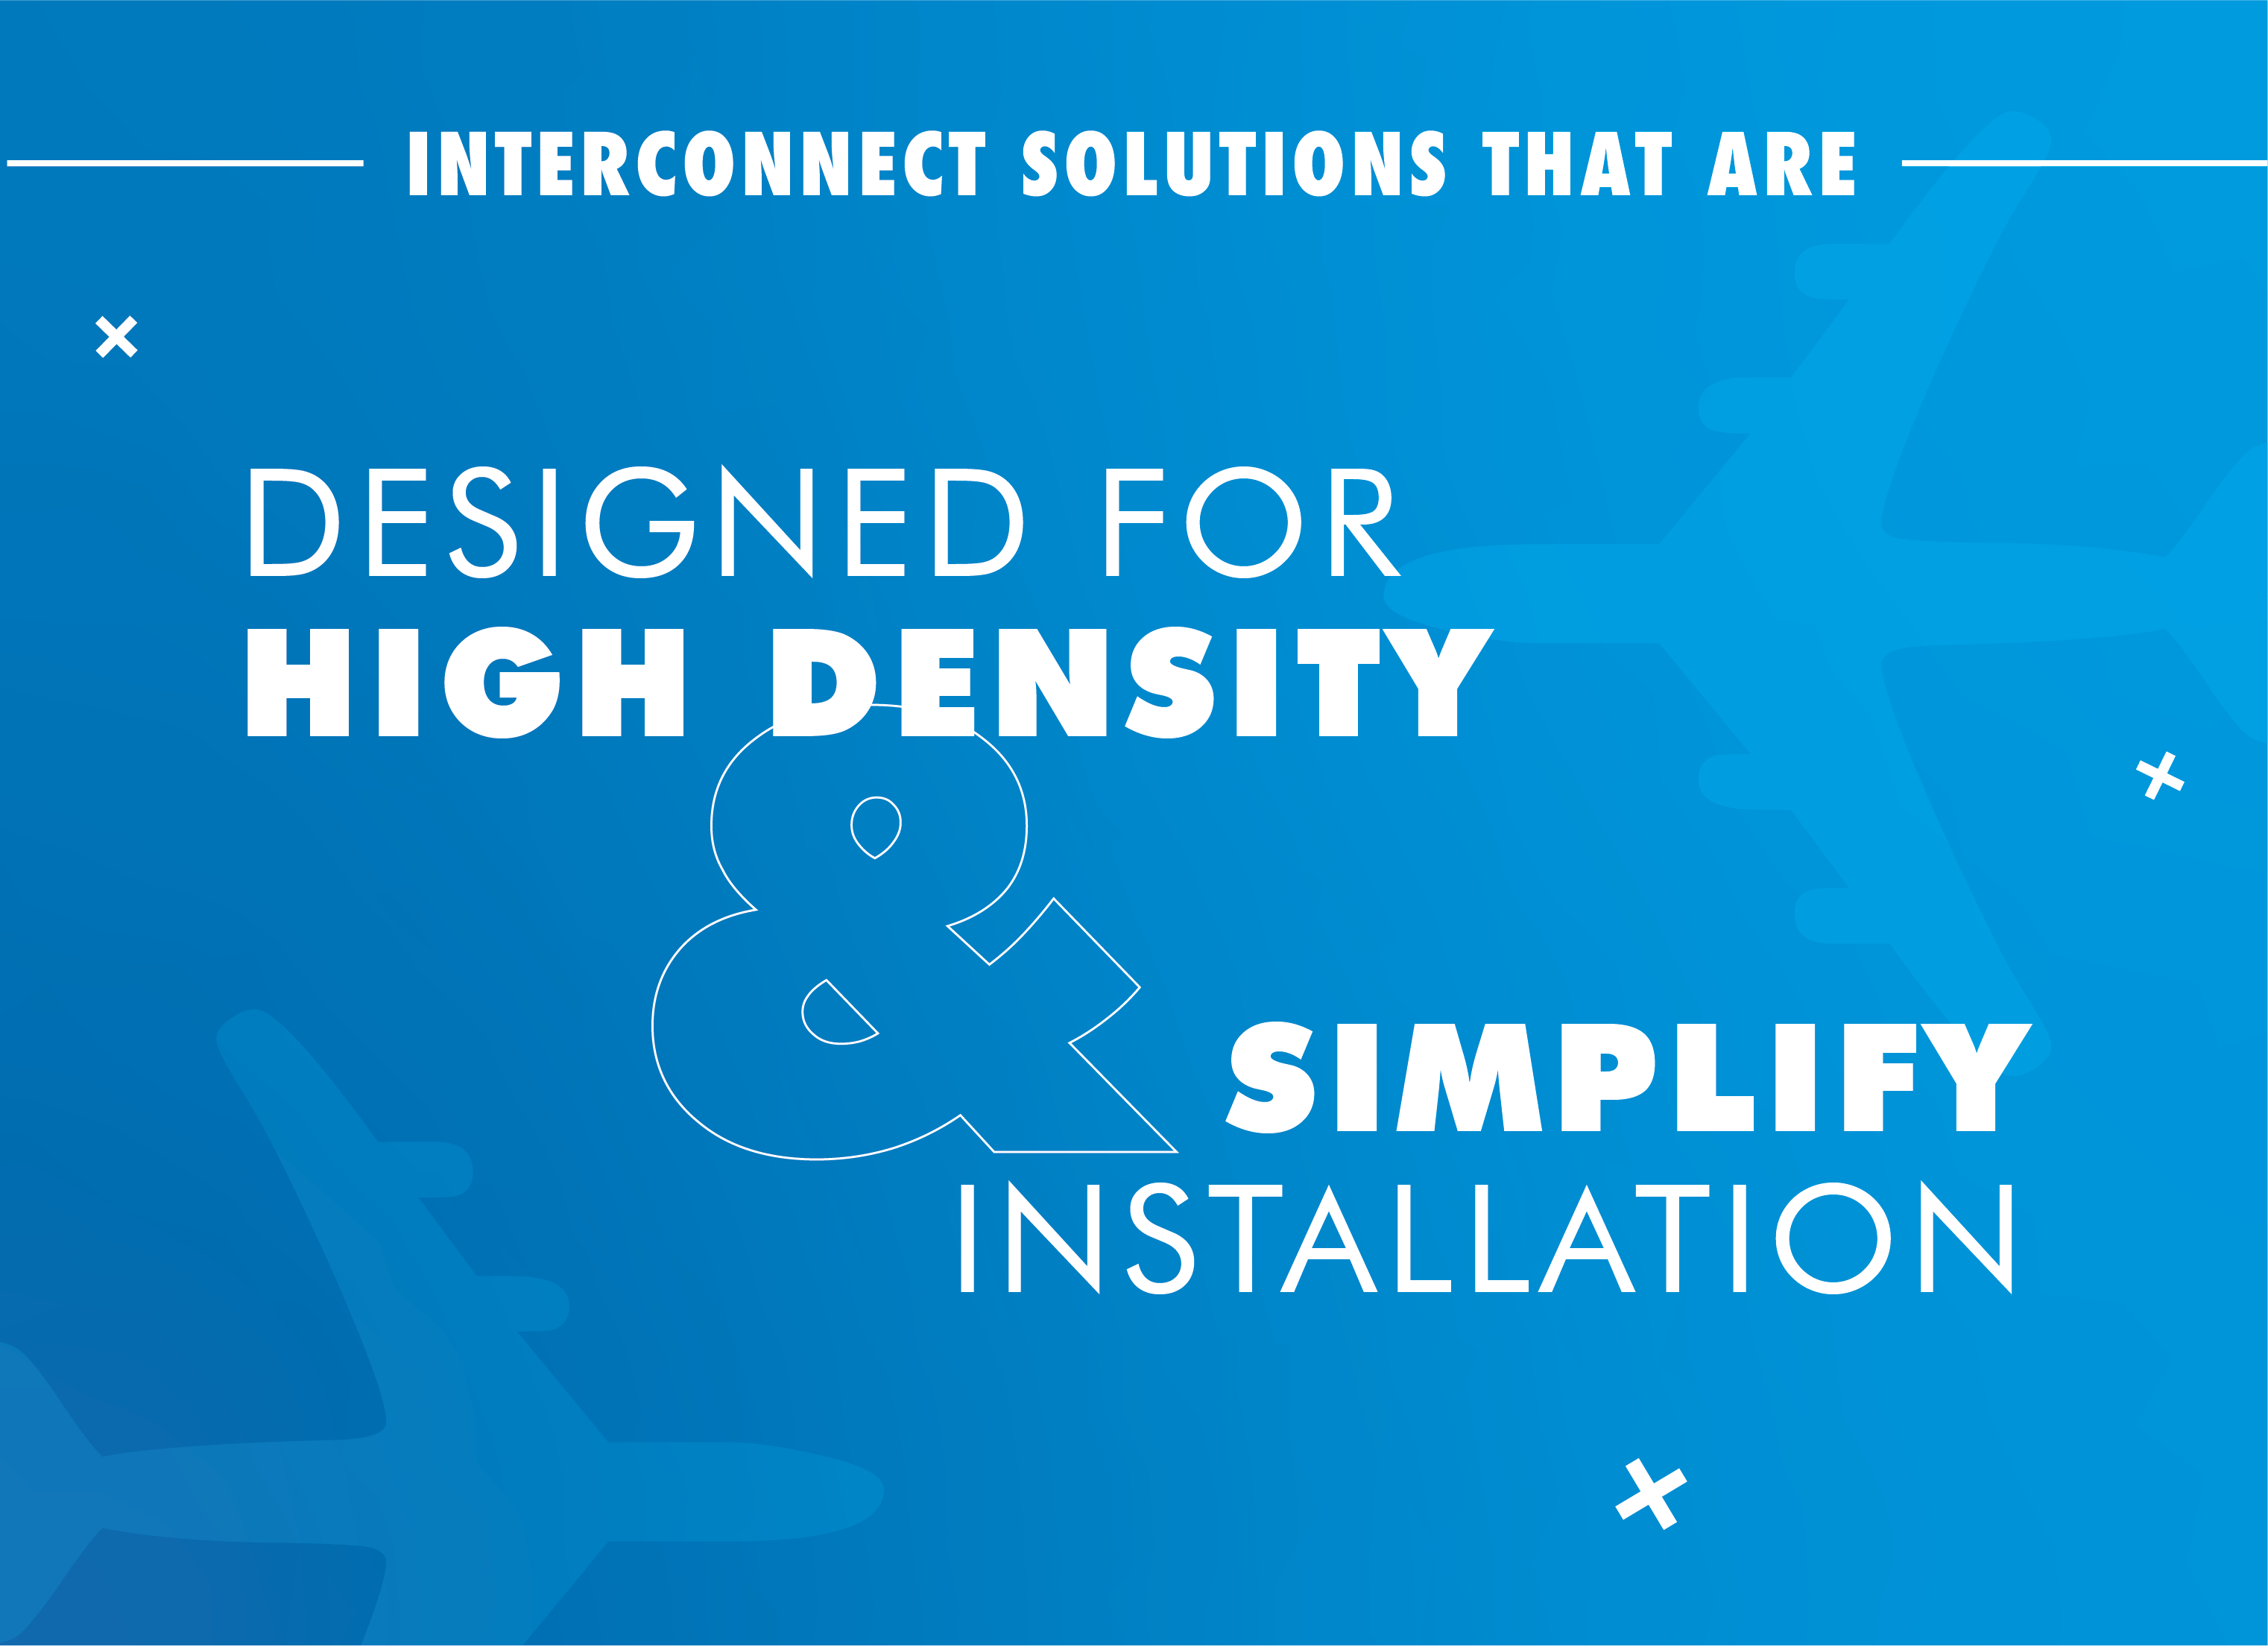 Products for High Density & Simplified Installation